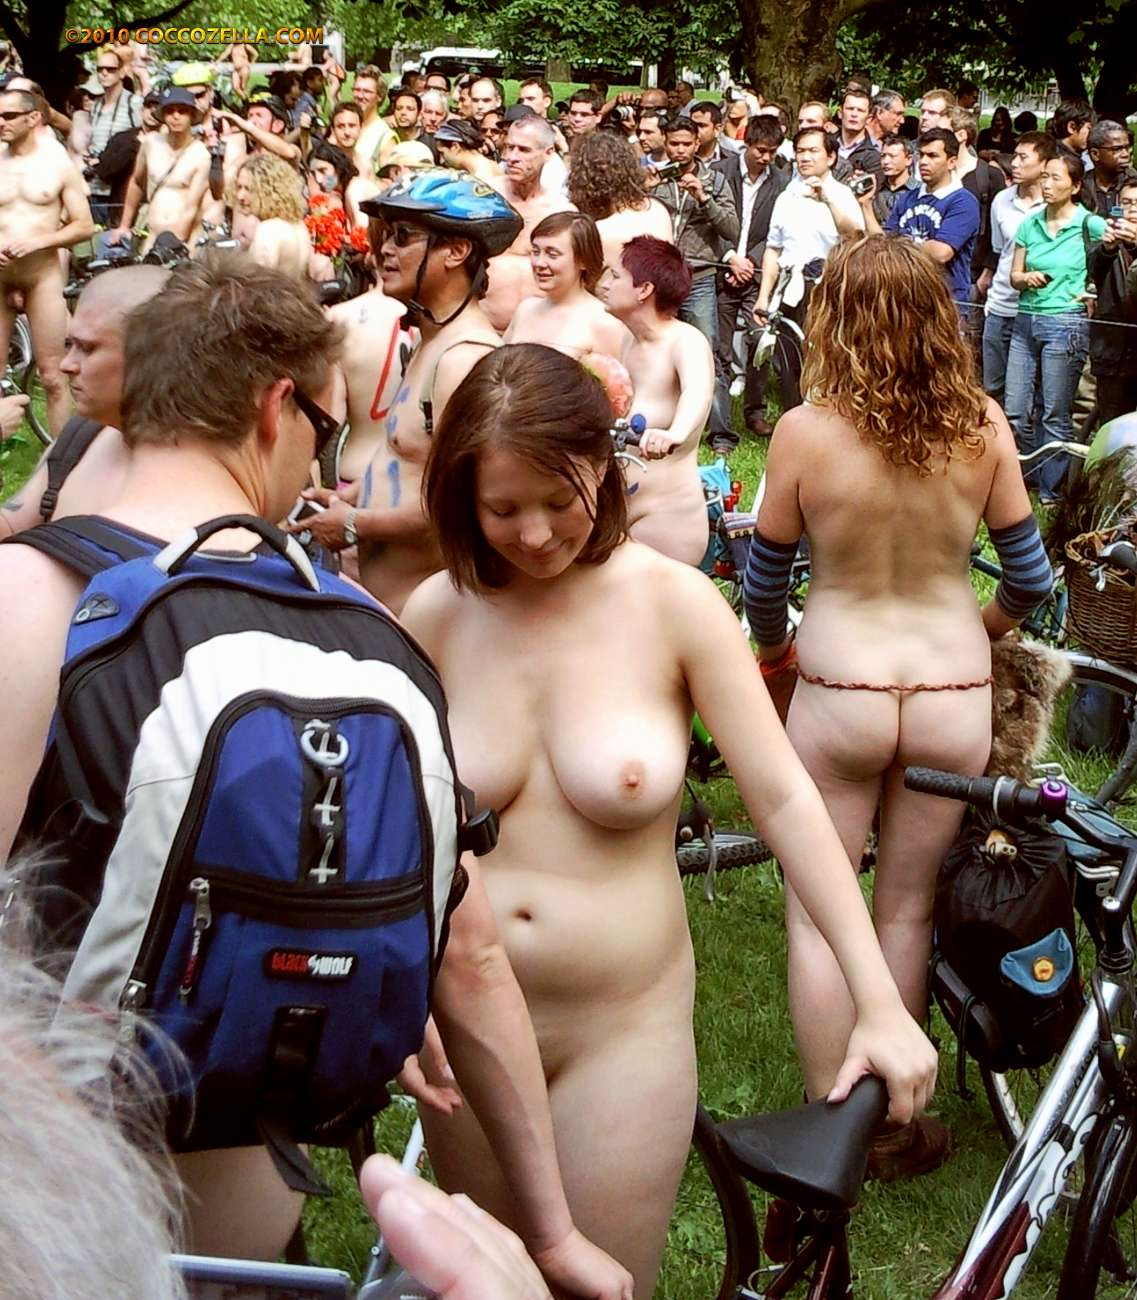 Chubby girls wnbr london porno pics